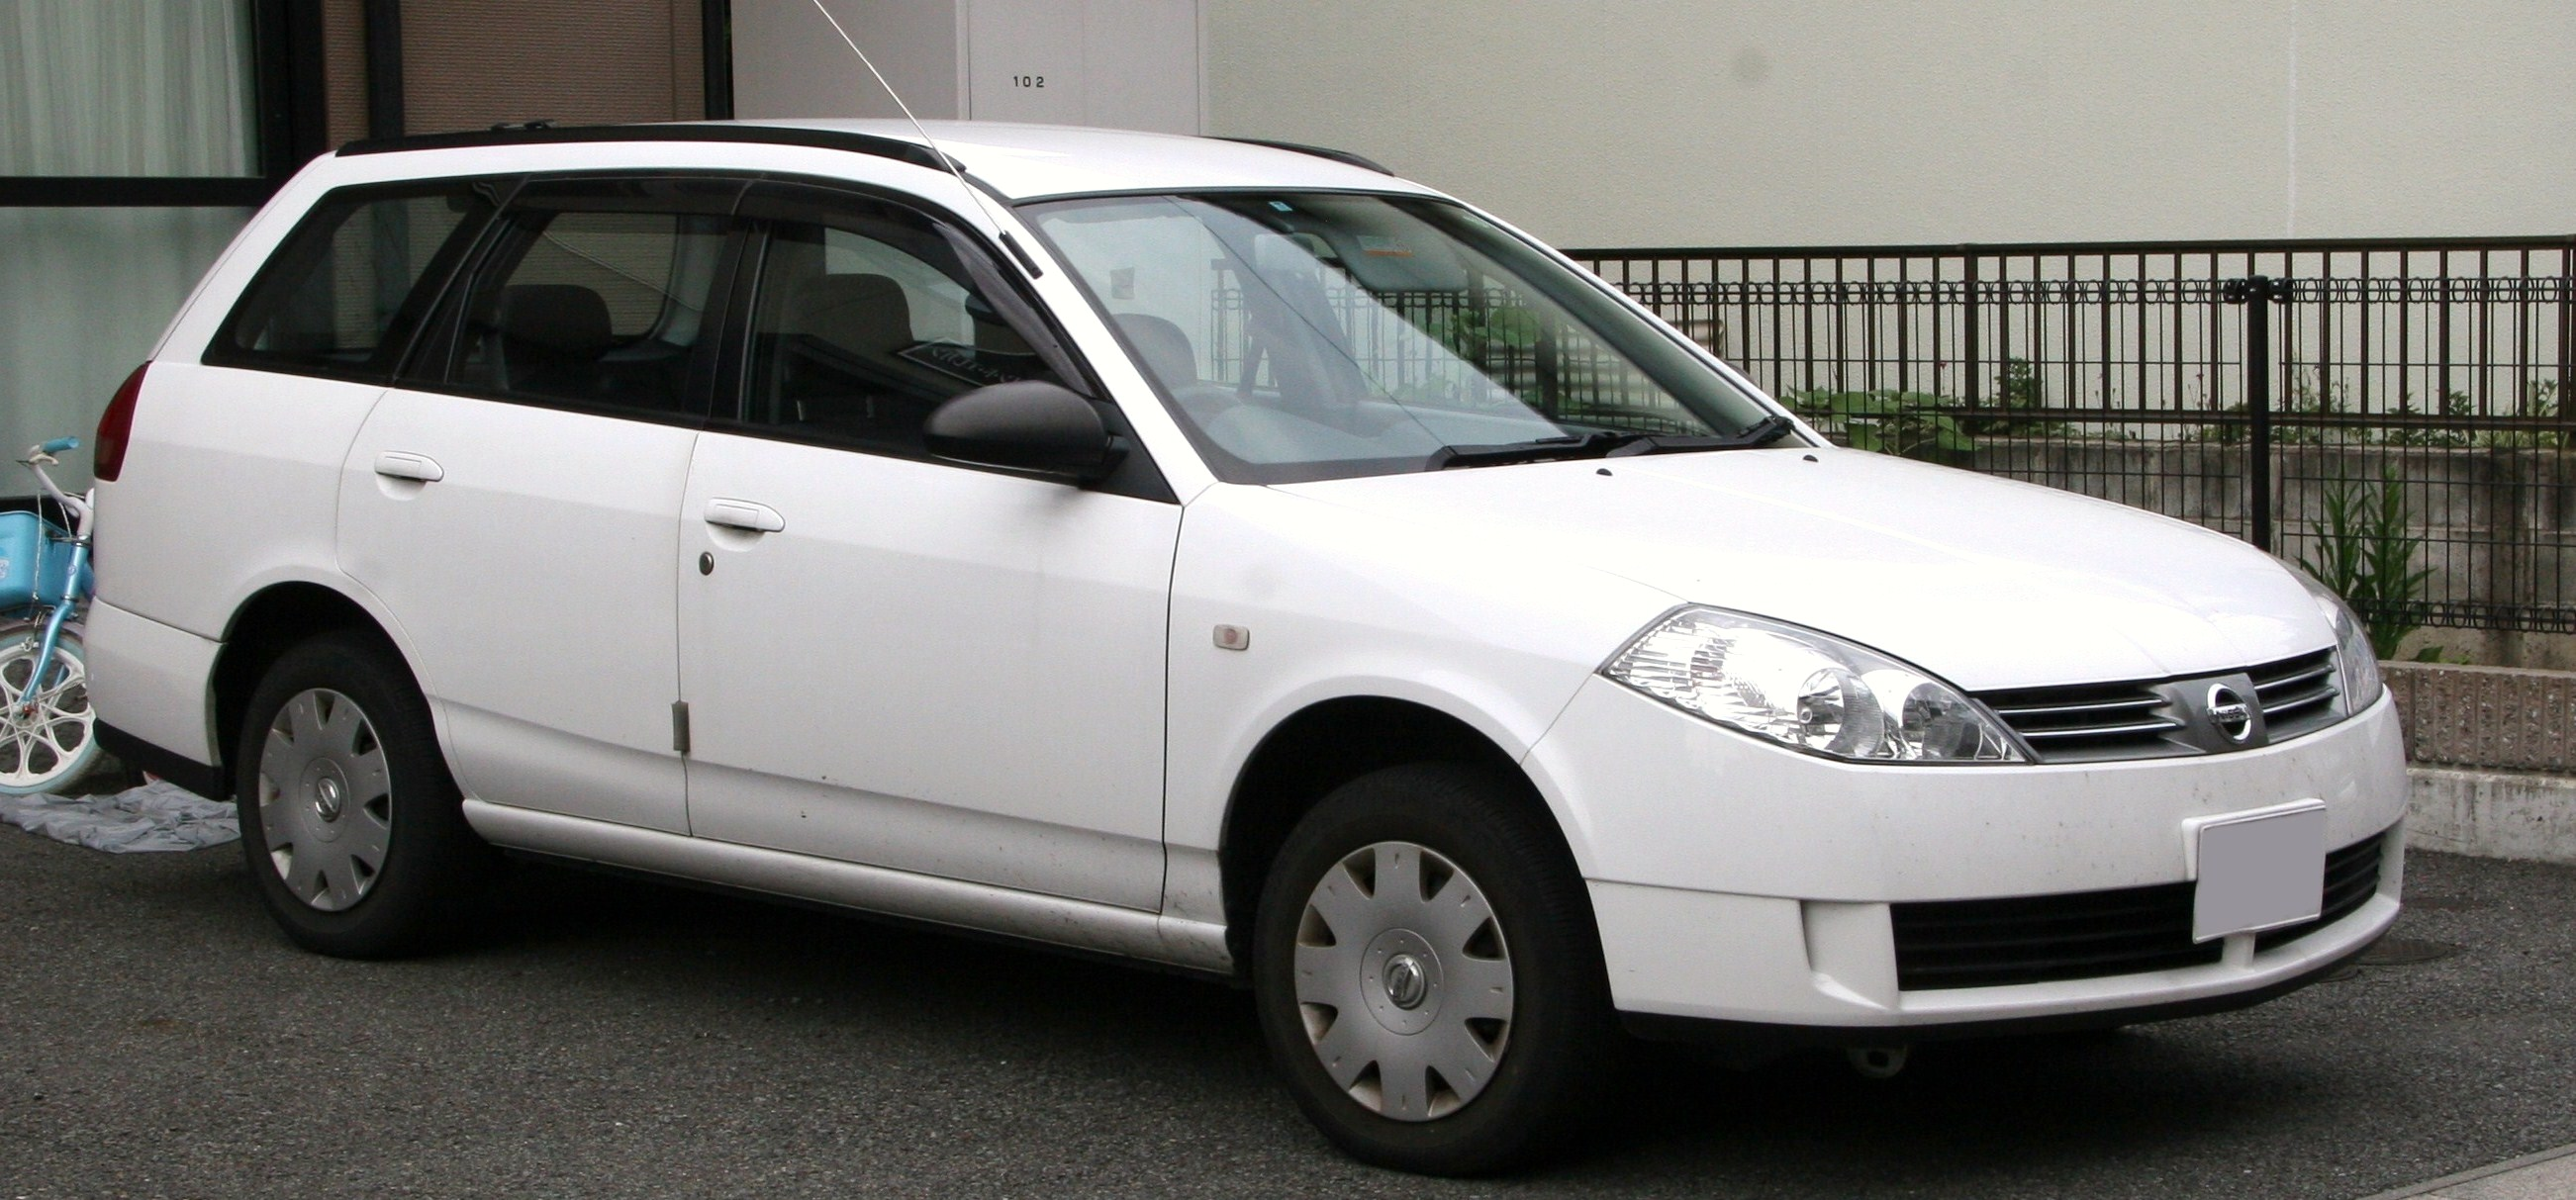 Nissan wingroad photo - 3